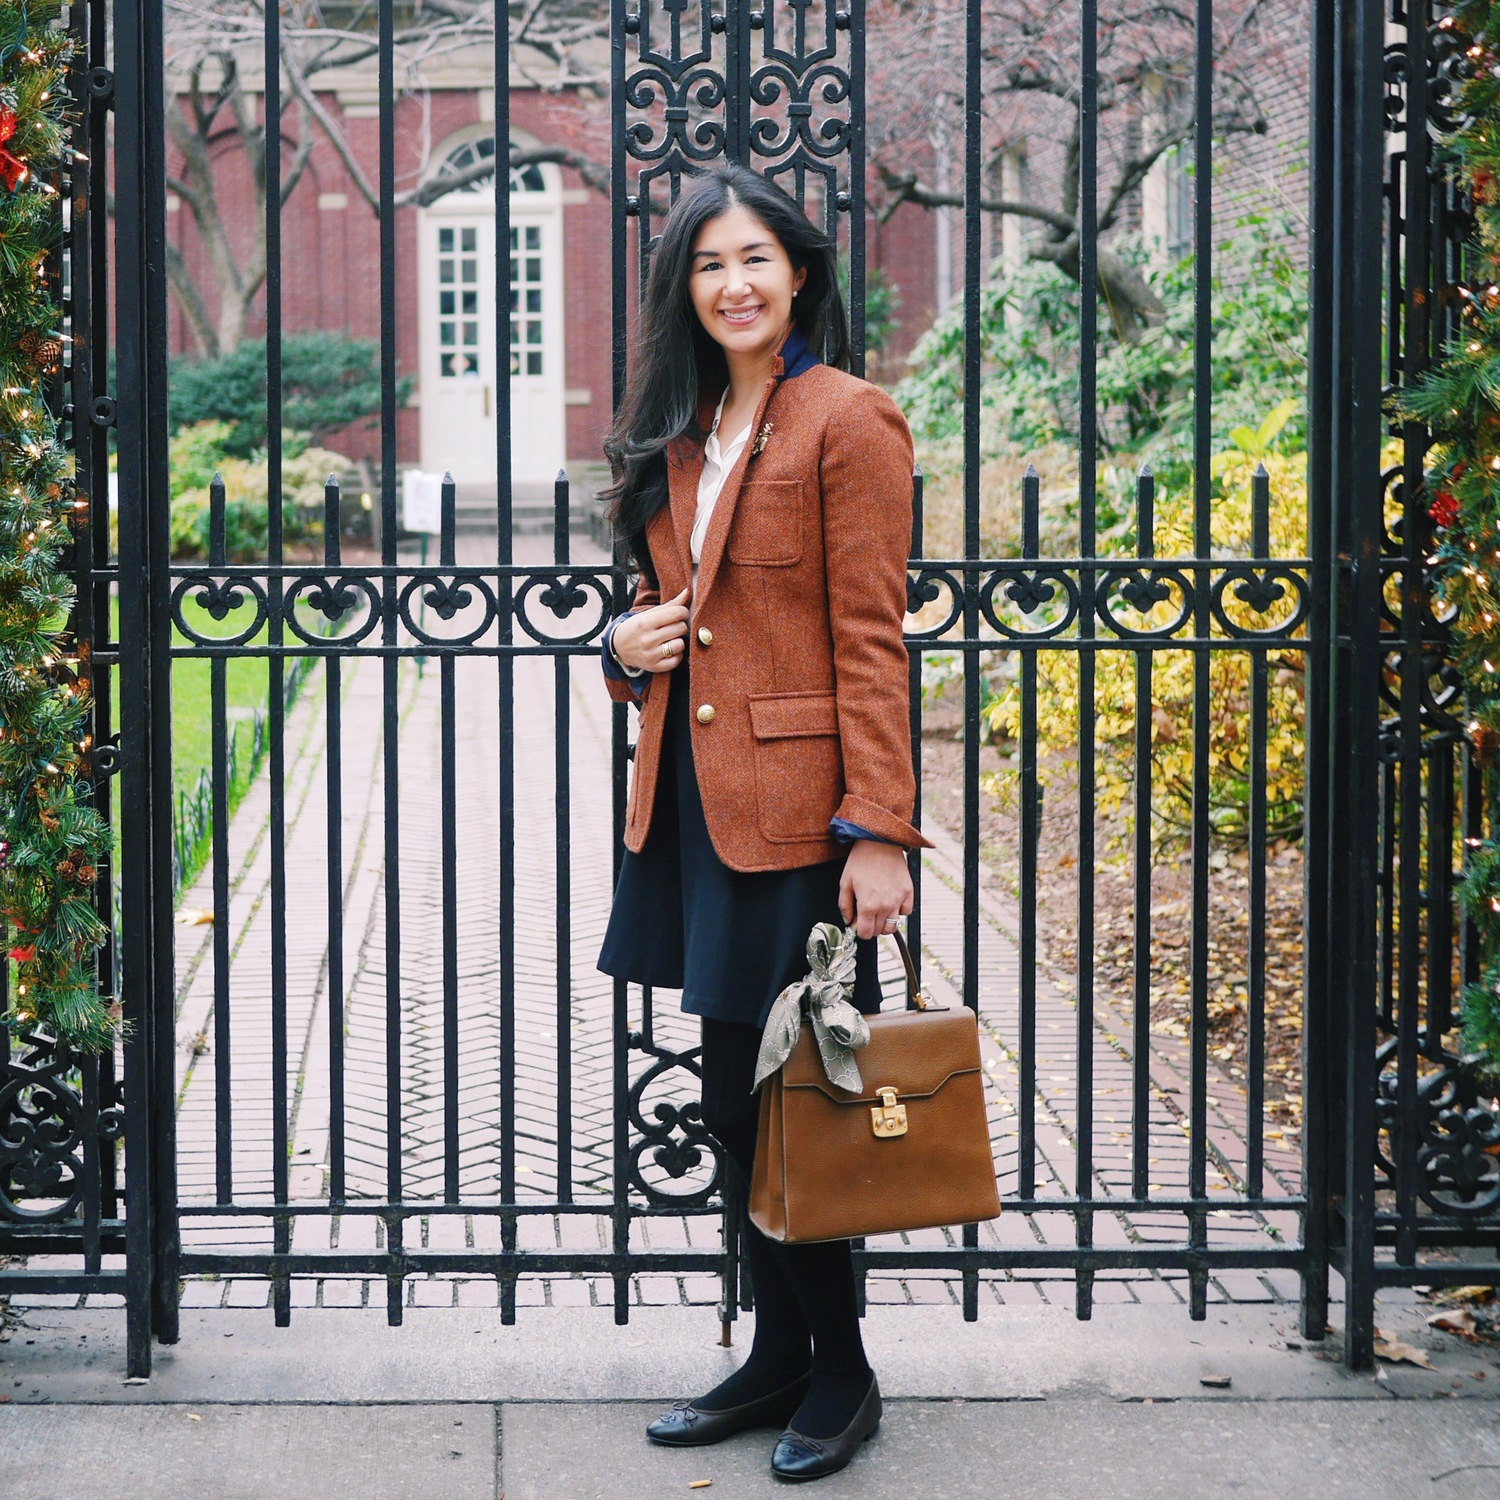 J+Crew+Rhodes+Blazer+Chanel+Flats+Gucci+Kelly+Bag+Everlane+Silk+Shirt+C+Wonder+Silk+Scarf+LOFT+Black+Skirt.jpeg